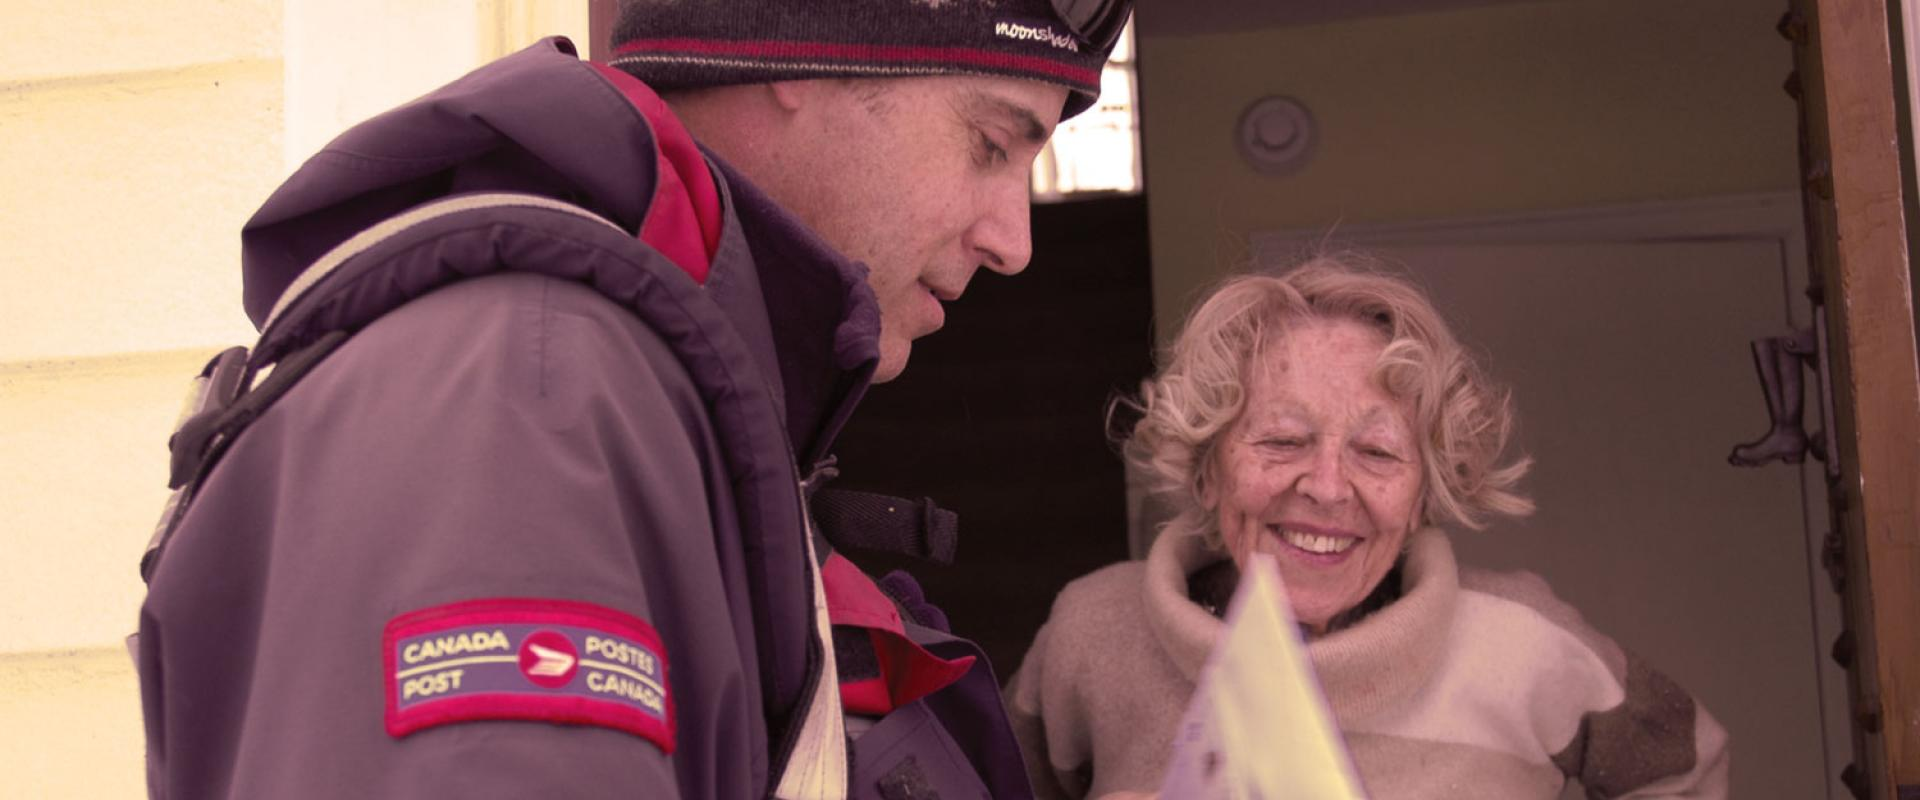 Letter carrier delivering mail to the door of a smiling senior citizen.